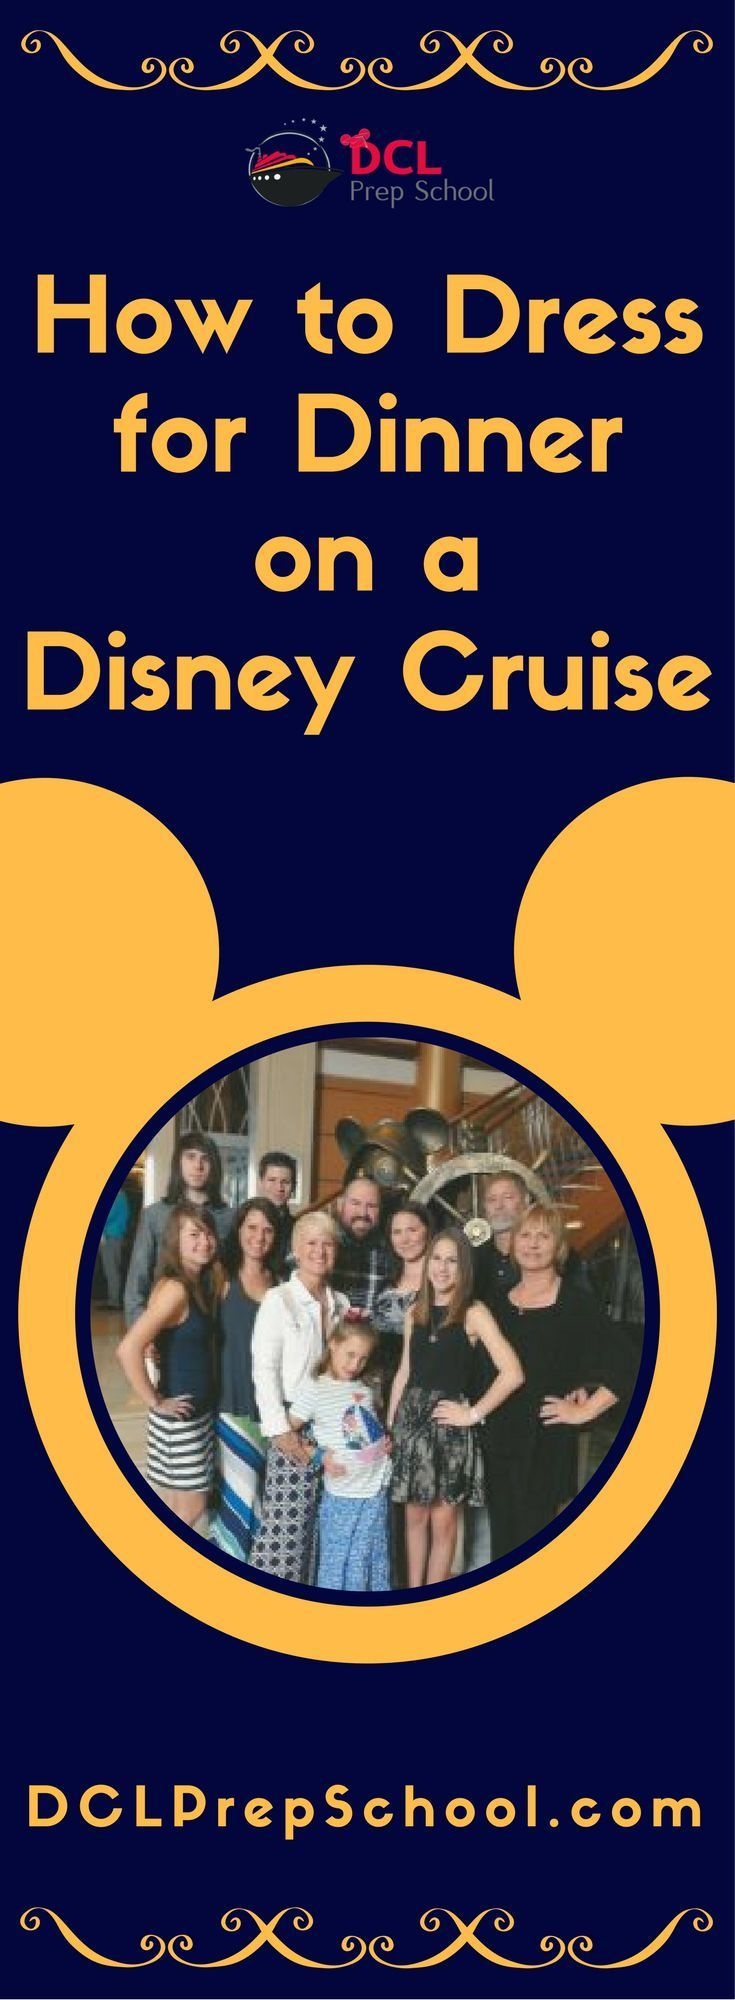 How to Dress for Dinner on a Disney Cruise | DCL Prep School